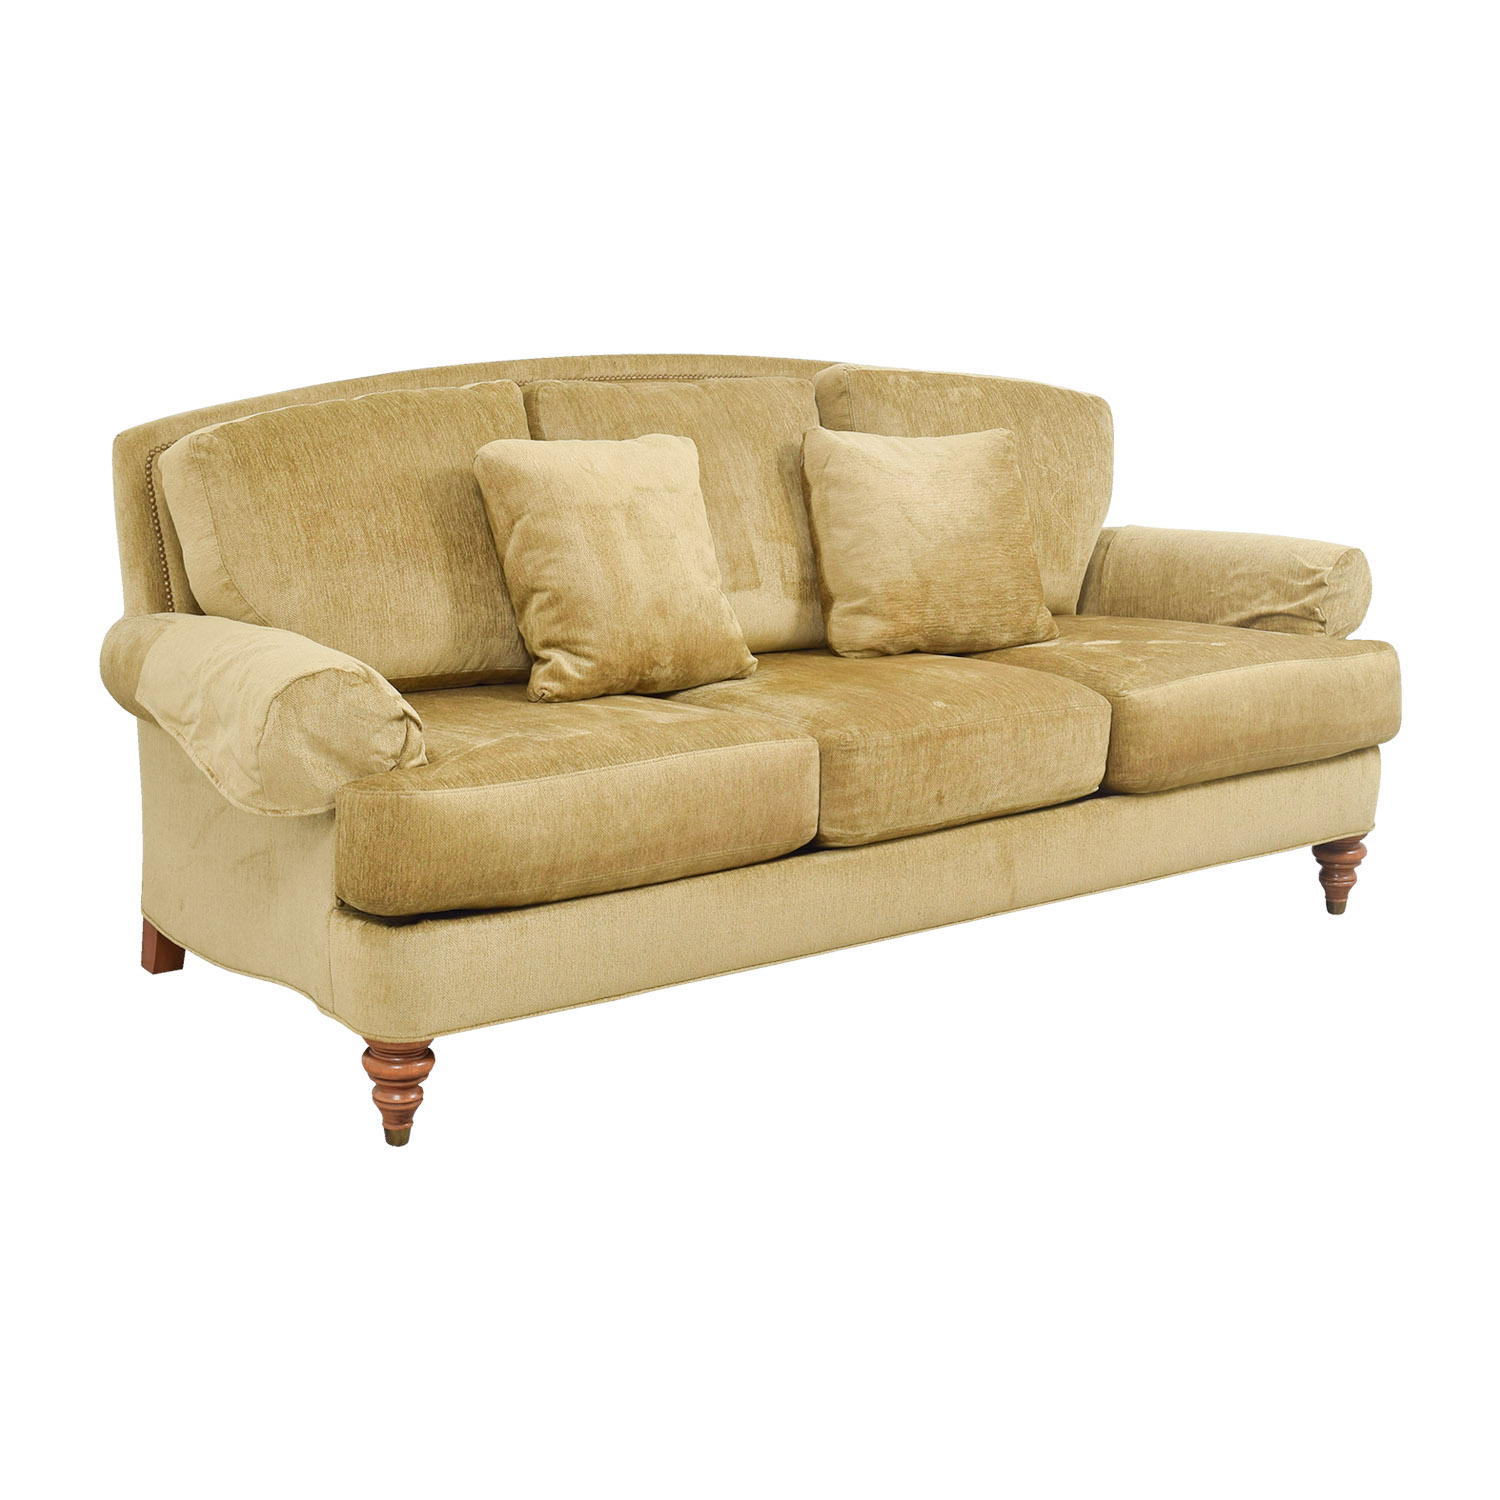 90% Off – Ethan Allen Ethan Allen Hyde Gold Three Cushion In Ethan Allen Sofas And Chairs (View 5 of 15)